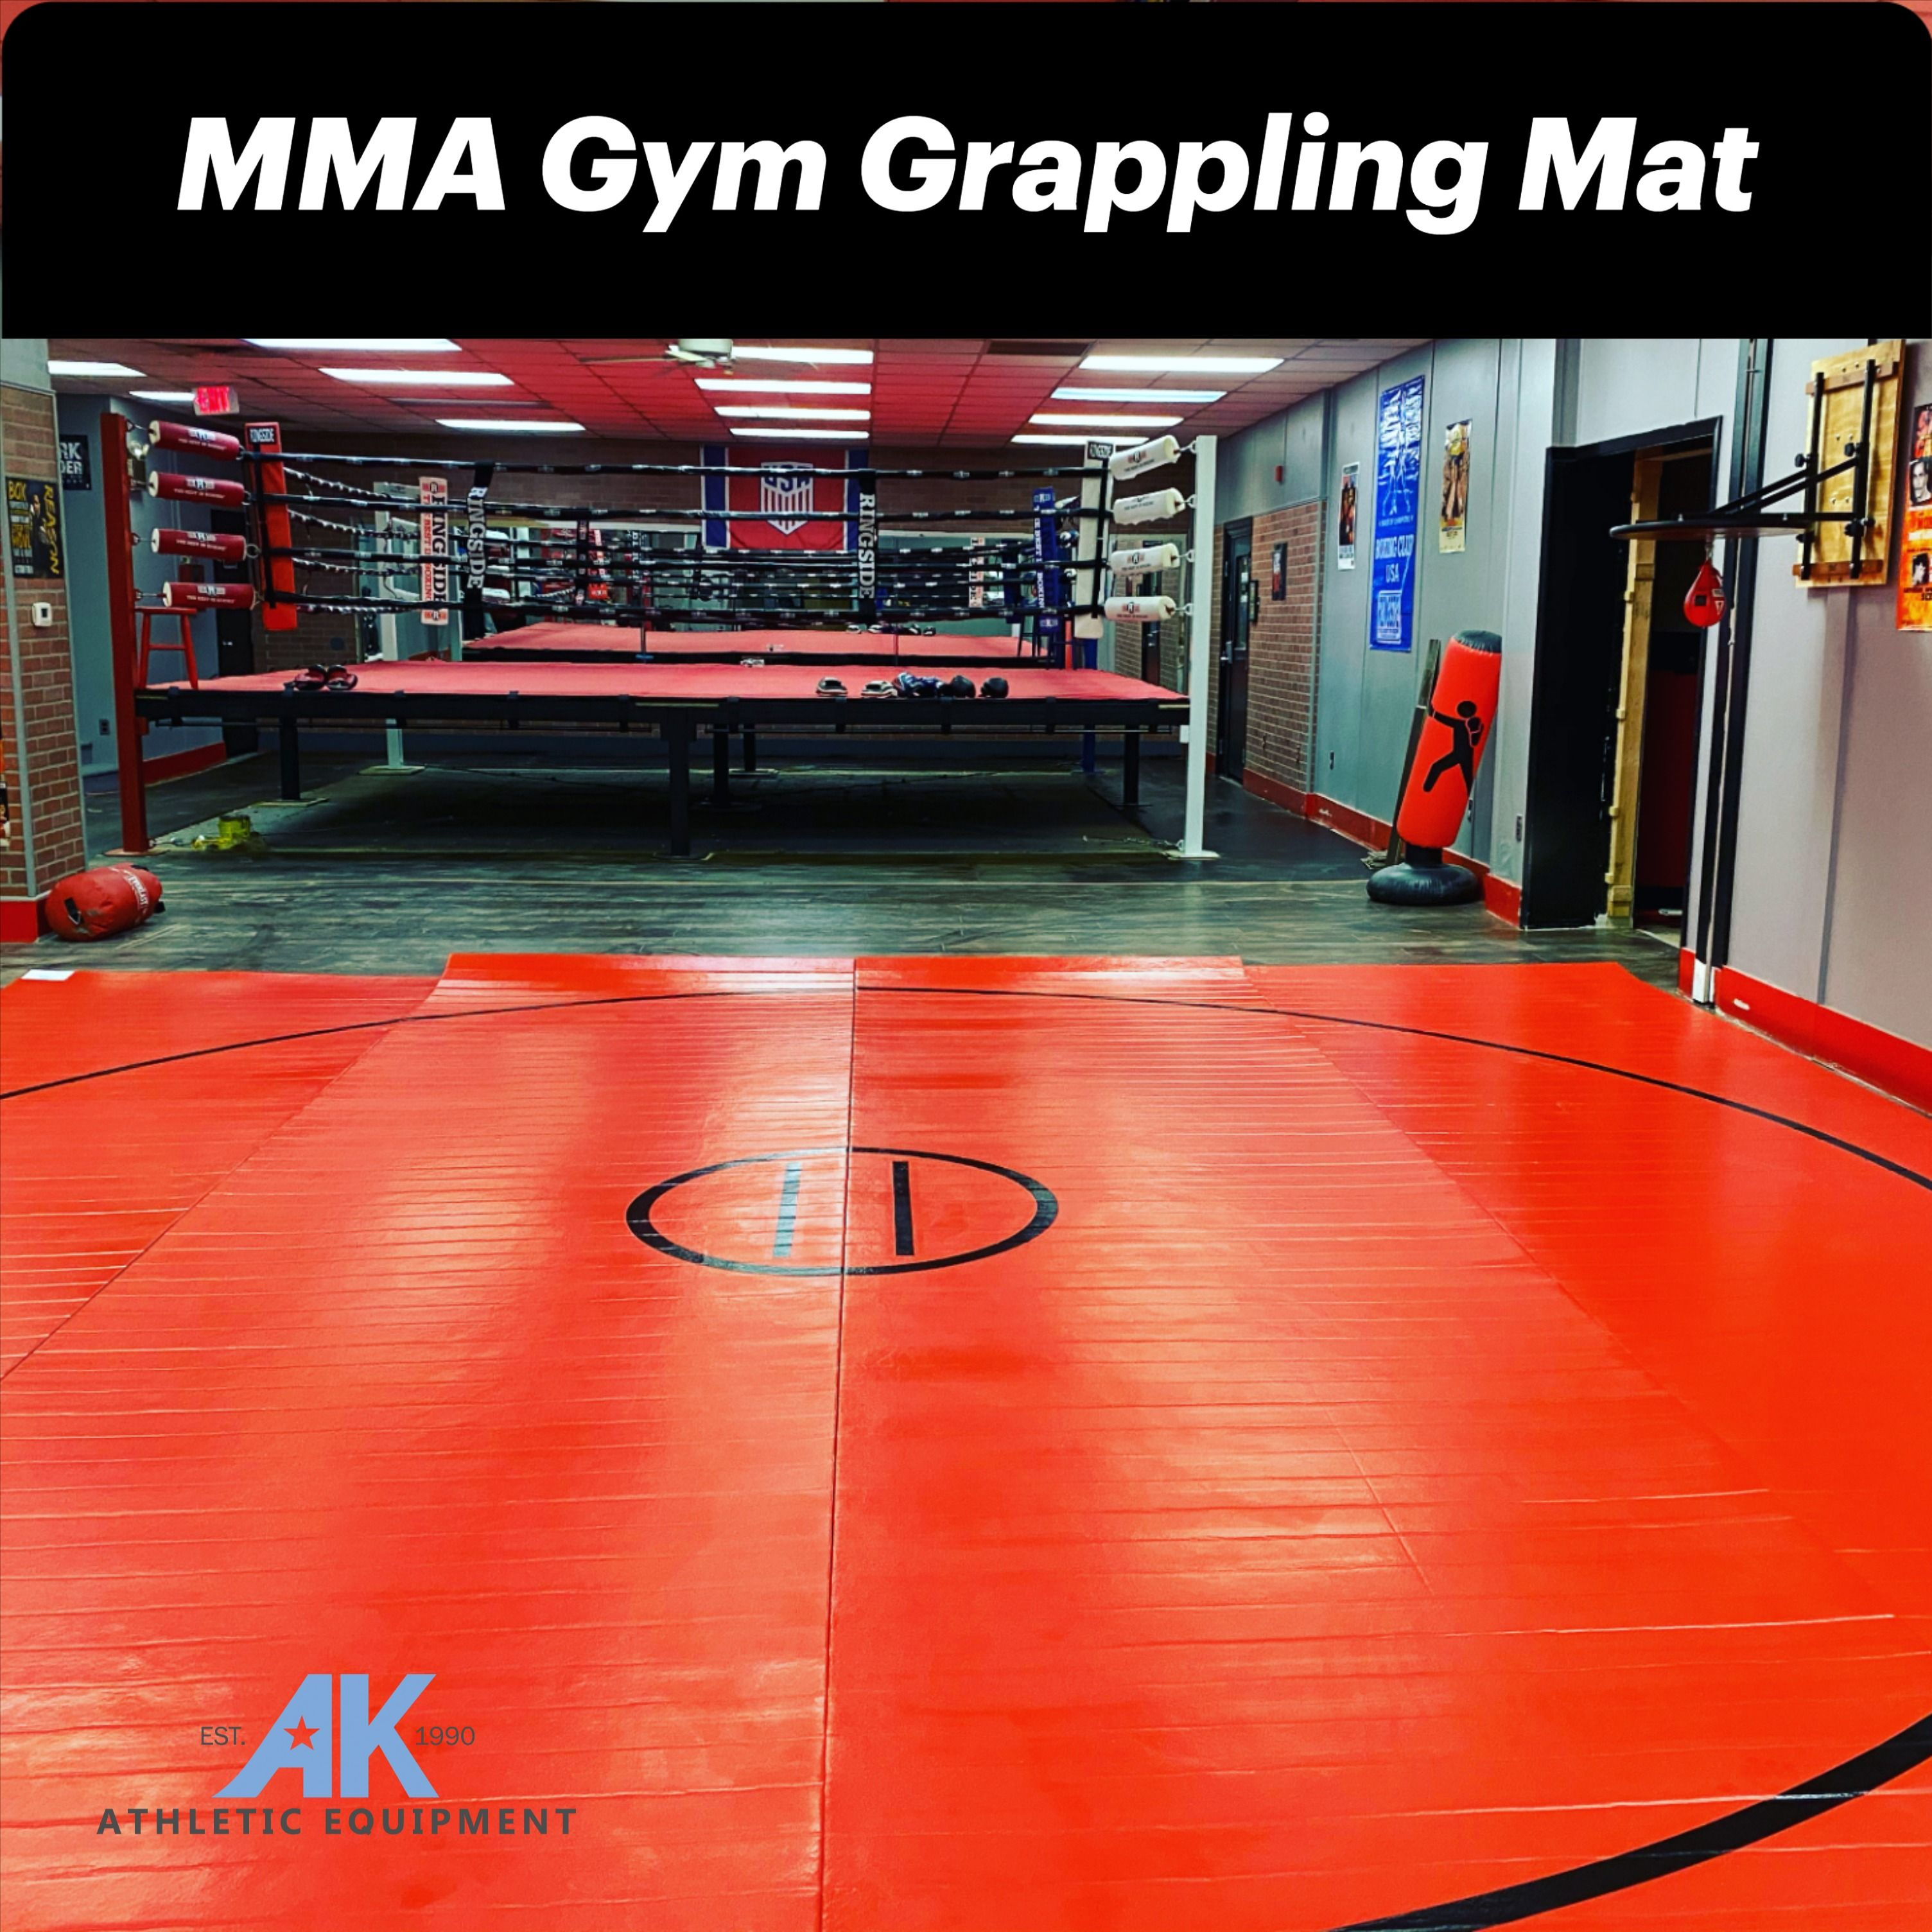 20 X 20 X 1 3 8 Roll Up Wrestling Mat In 2020 Ufc Training Boxing Gym Design Martial Arts Gym